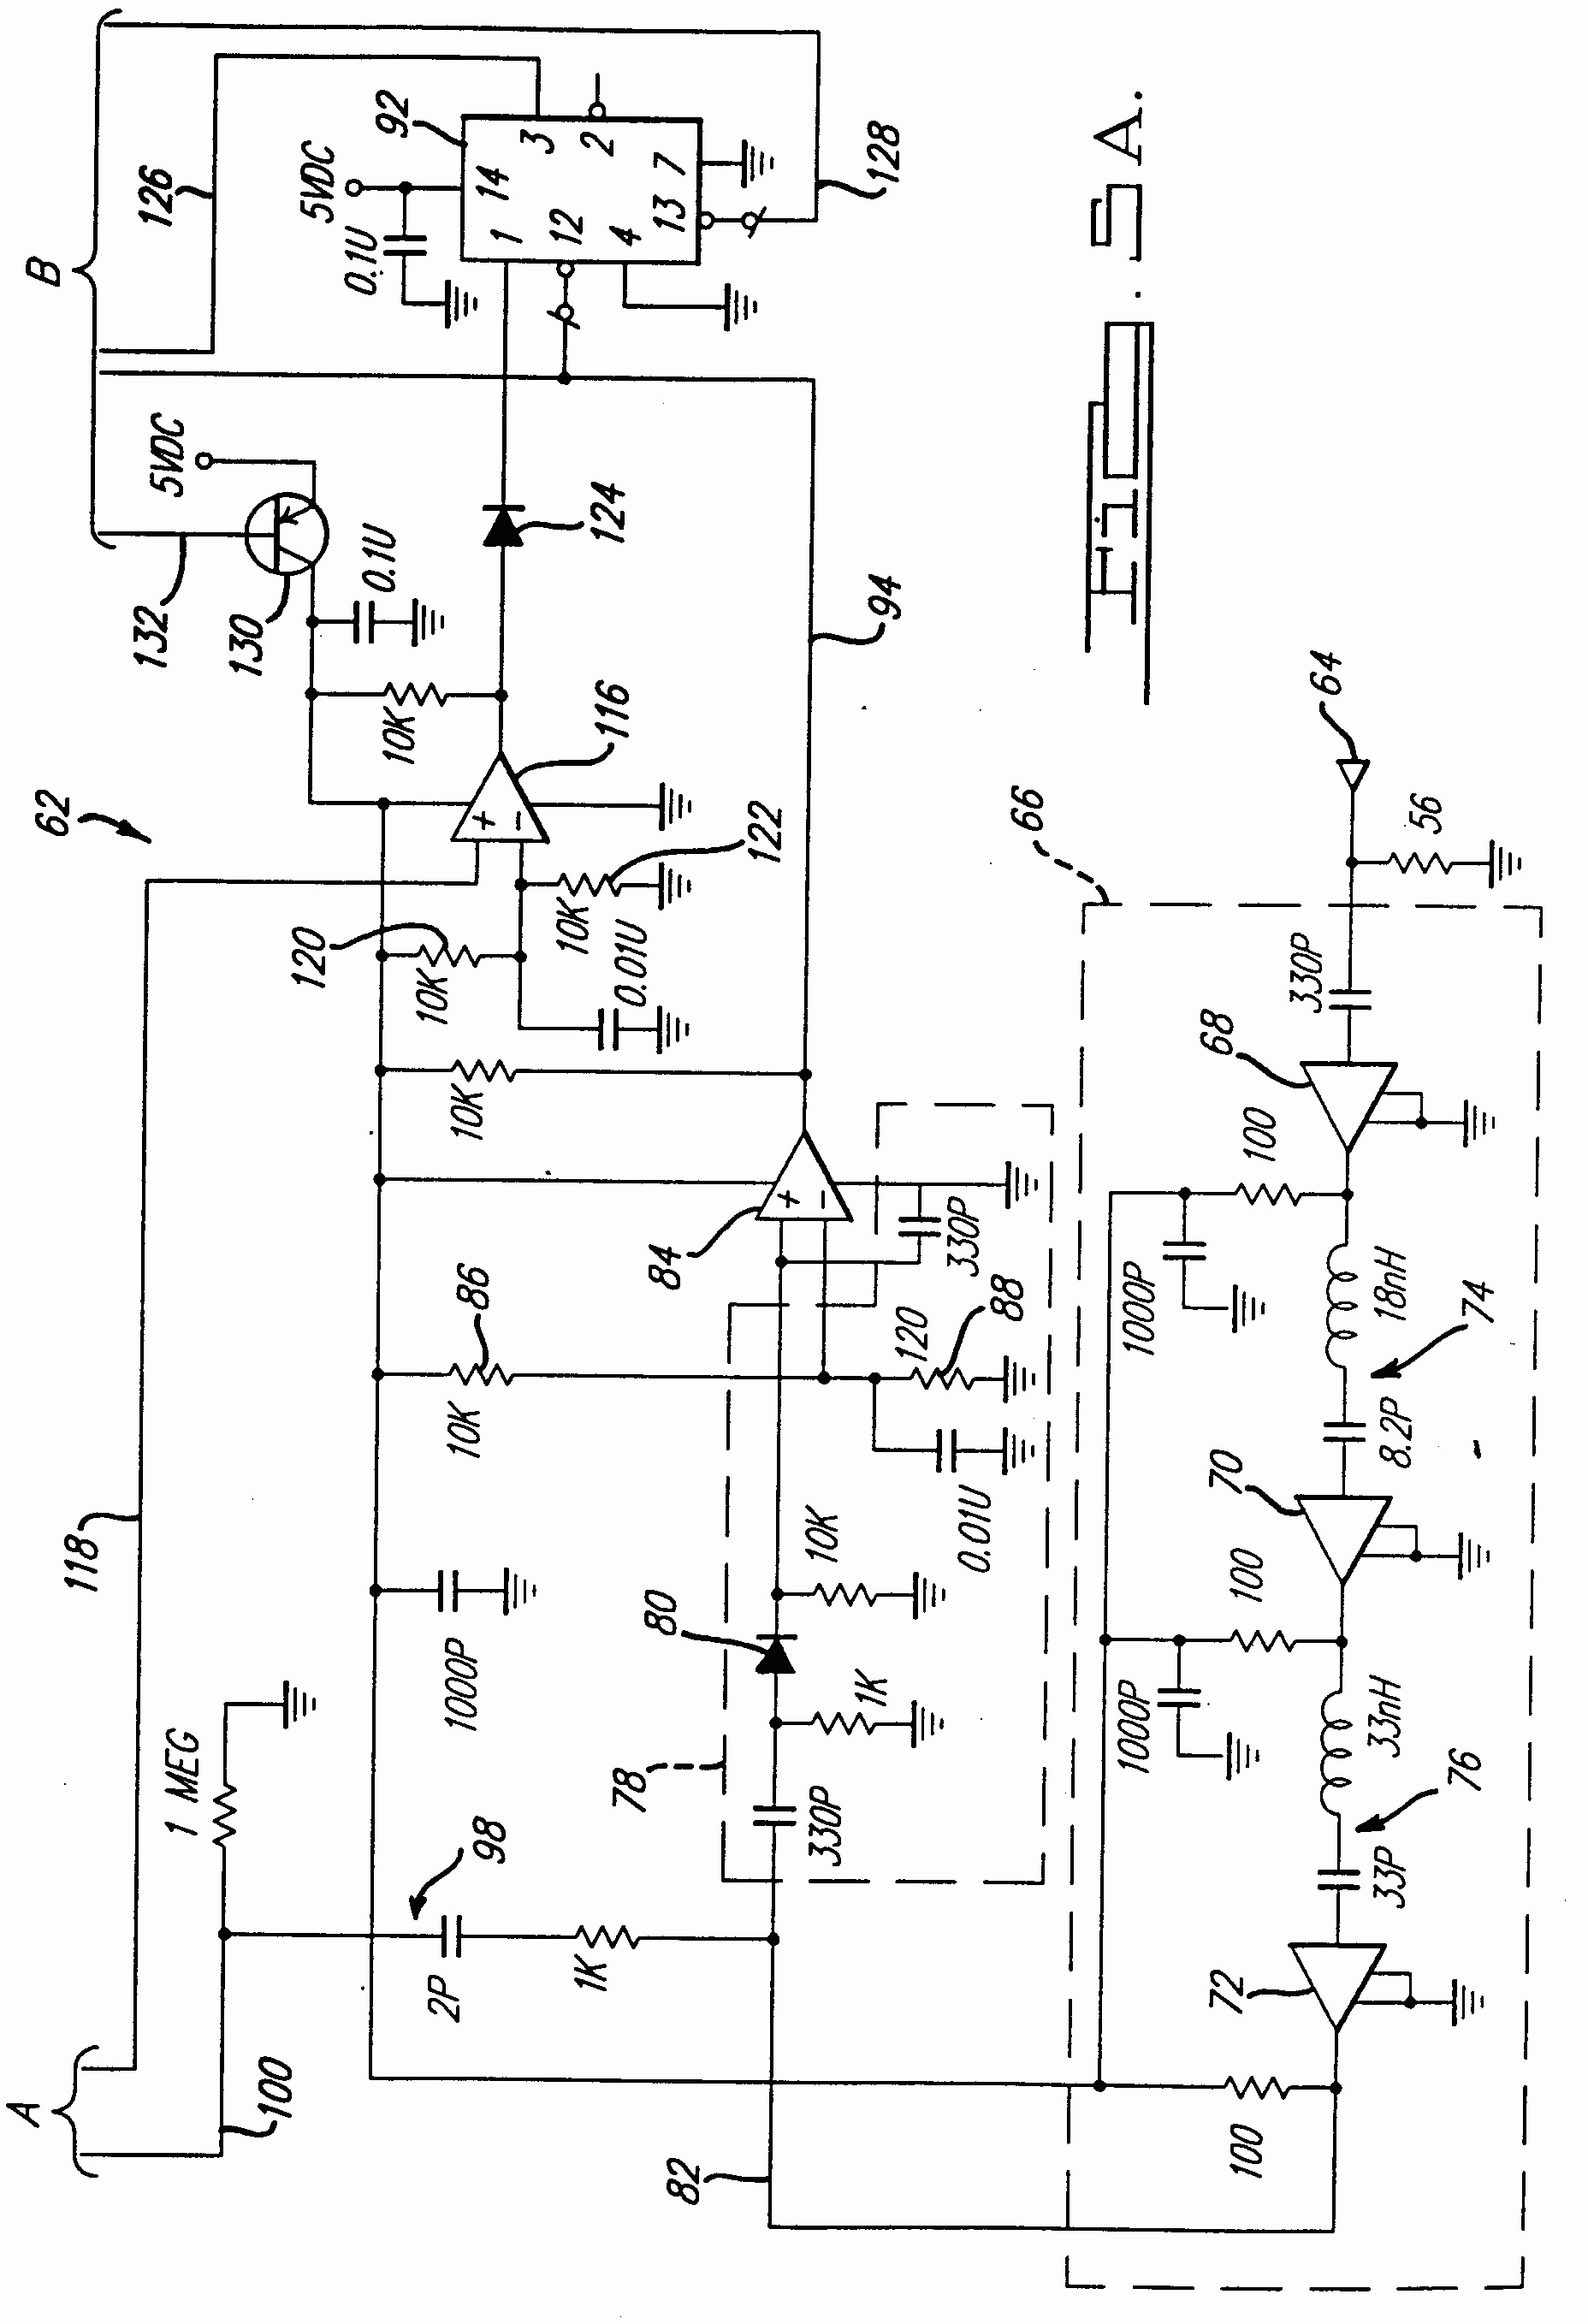 Chamberlain Garage Door Sensor Inspirational Hqdefault For - Chamberlain Garage Door Sensor Wiring Diagram